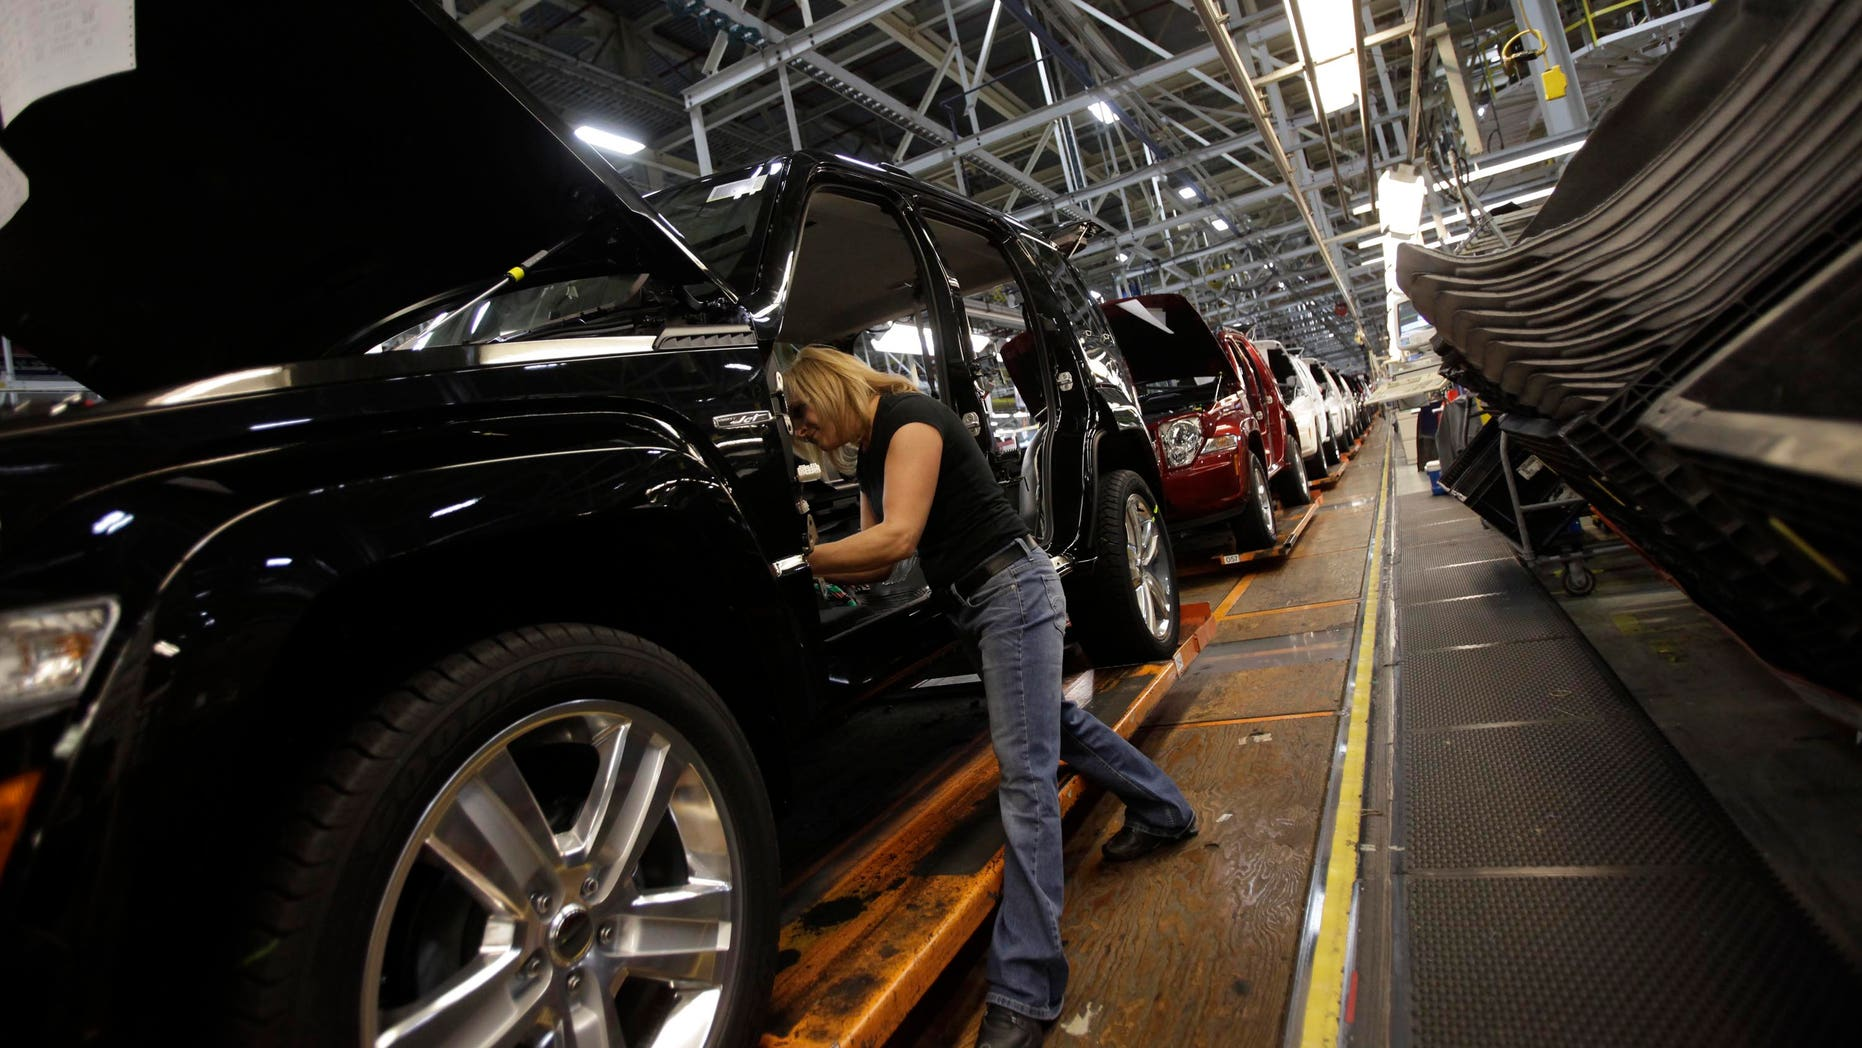 TOLEDO, OH - NOVEMBER 16:  Union worker Pam Bialecki installs carpet into a Jeep Liberty at the Toledo Assembly Complex on November 16, 2011 in Toledo, Ohio. Chrysler Group LLC says it will add 1,100 jobs at the Toledo, Ohio assembly complex along with a new body shop and quality center as part of an overall $1.7 billion investment to build a new generation of Jeep sport utility vehicles.  (Photo by J.D. Pooley/Getty Images)